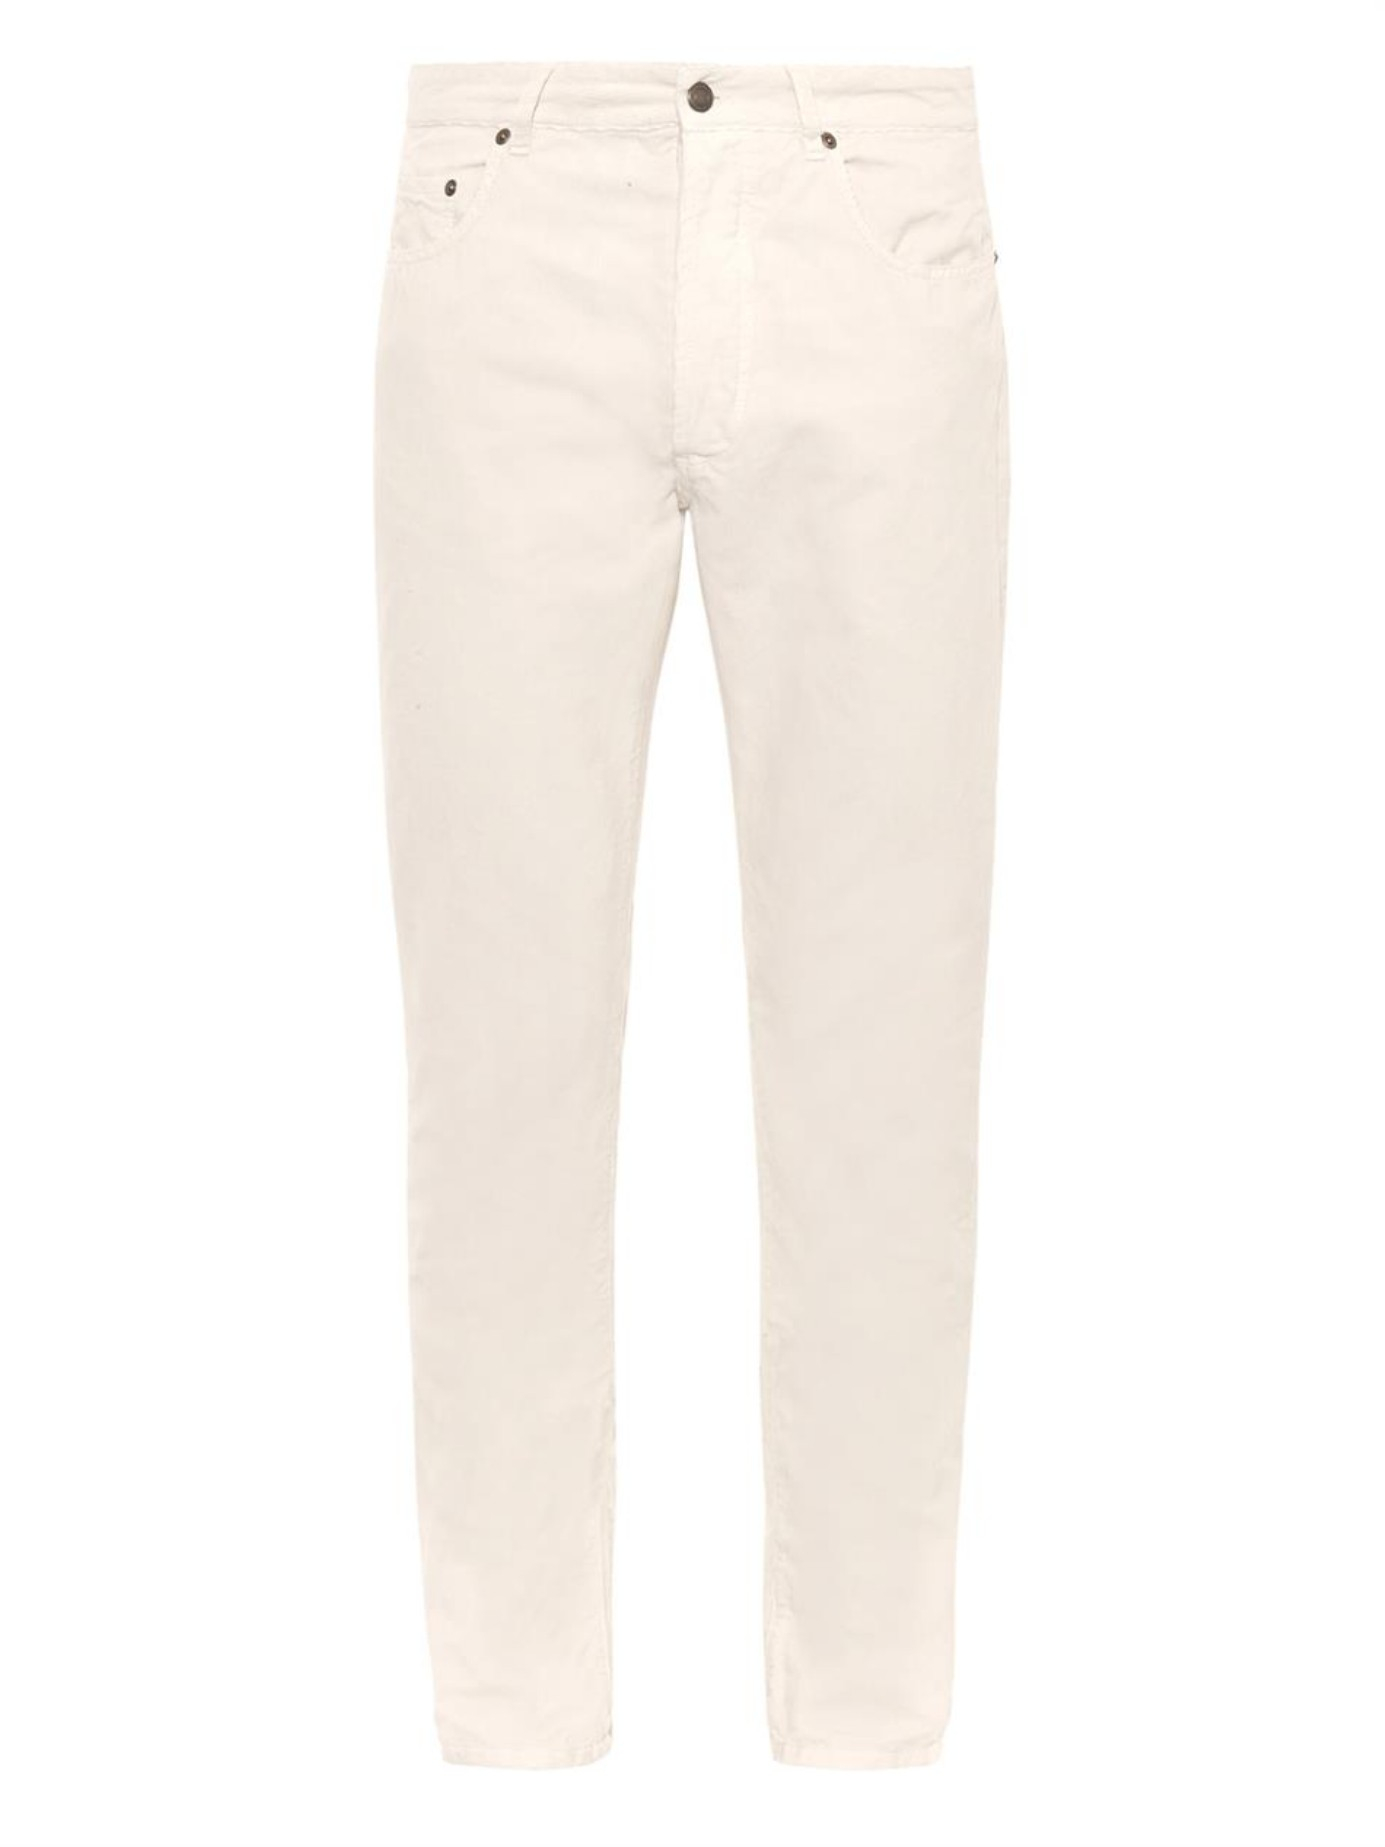 TROUSERS - Casual trousers Bottega Veneta The Cheapest Cheap Price Buy Cheap 100% Original Clearance Extremely PLnCYkx